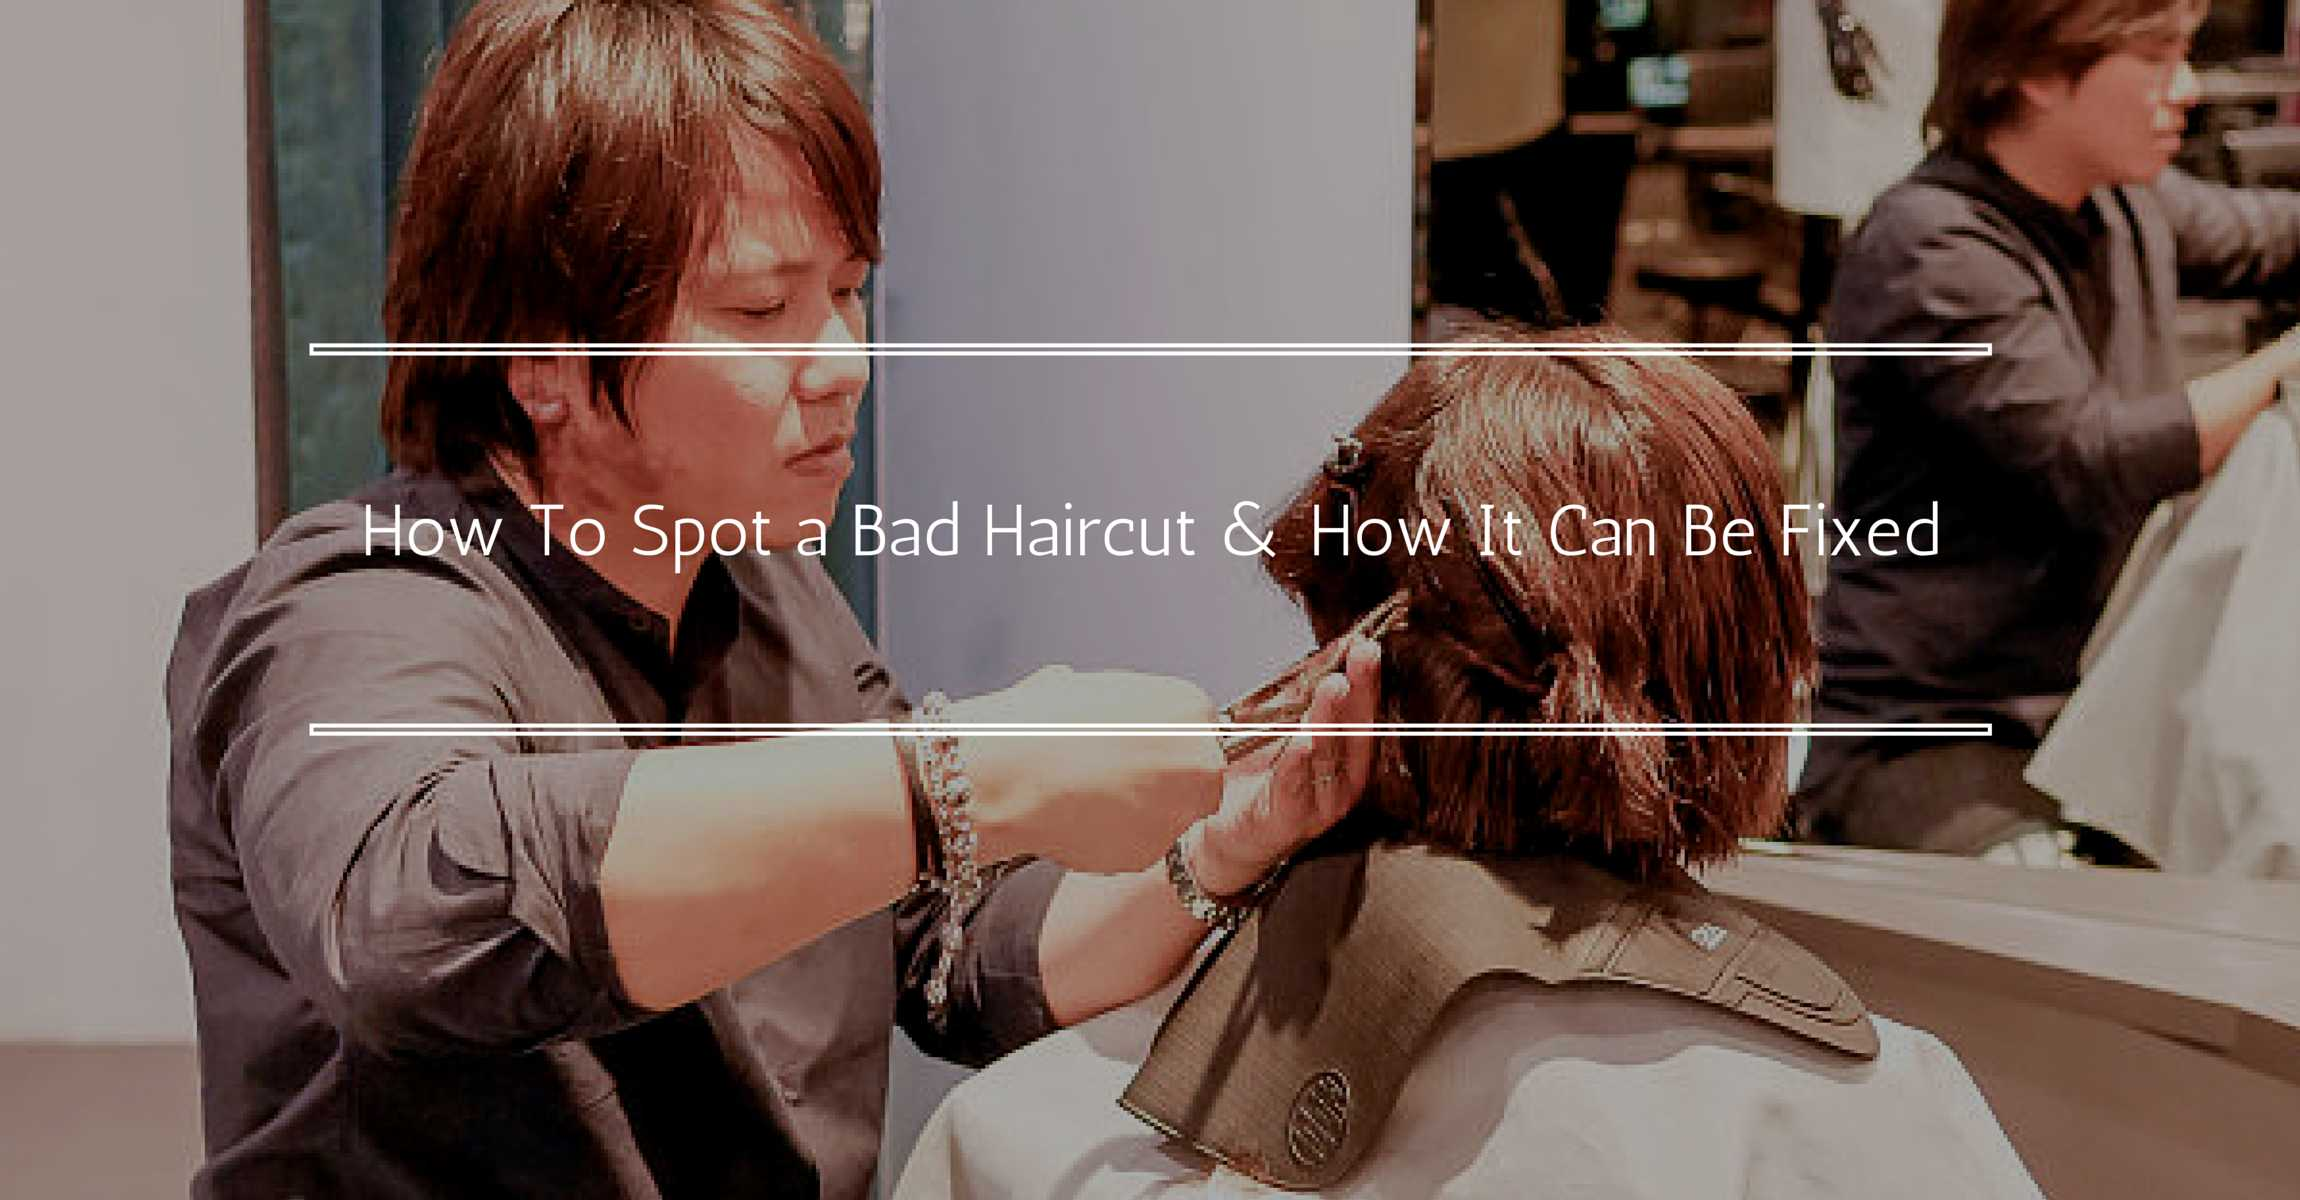 How to Spot a Bad Haircut... and How It Can Be Fixed!